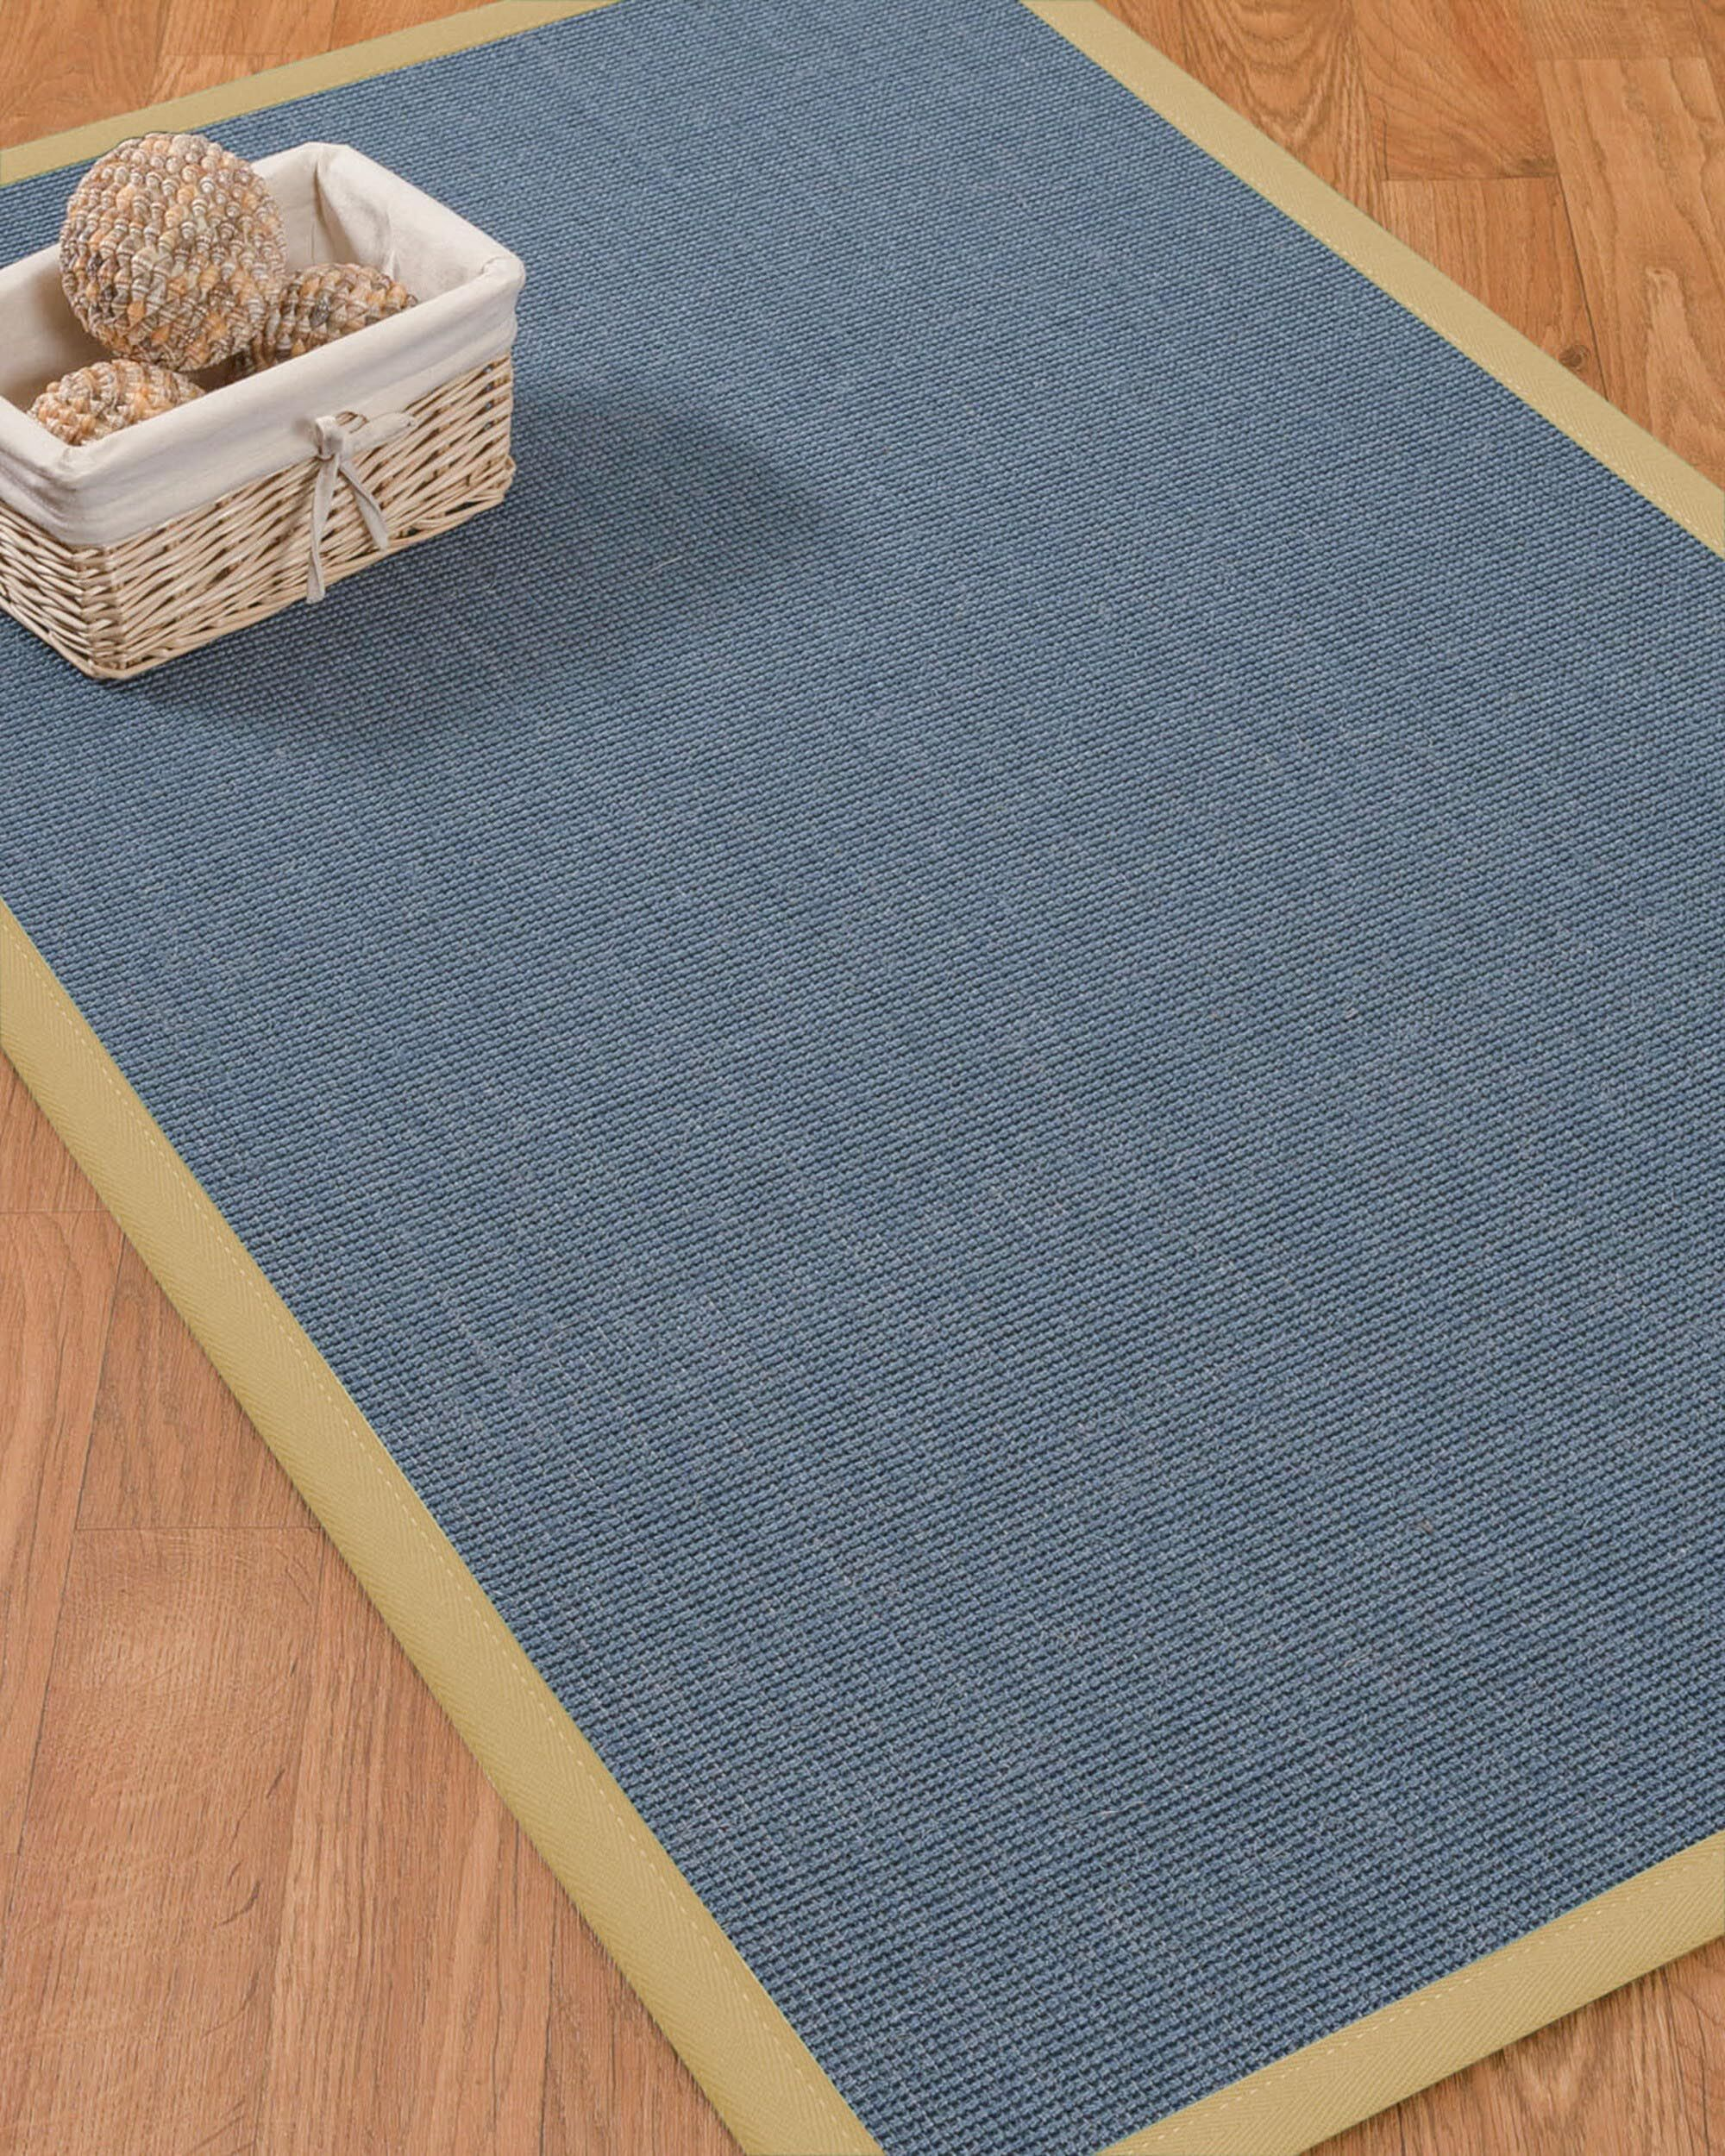 Ivy Border Hand-Woven Gray/Sage Area Rug Rug Pad Included: No, Rug Size: Rectangle 2' x 3'